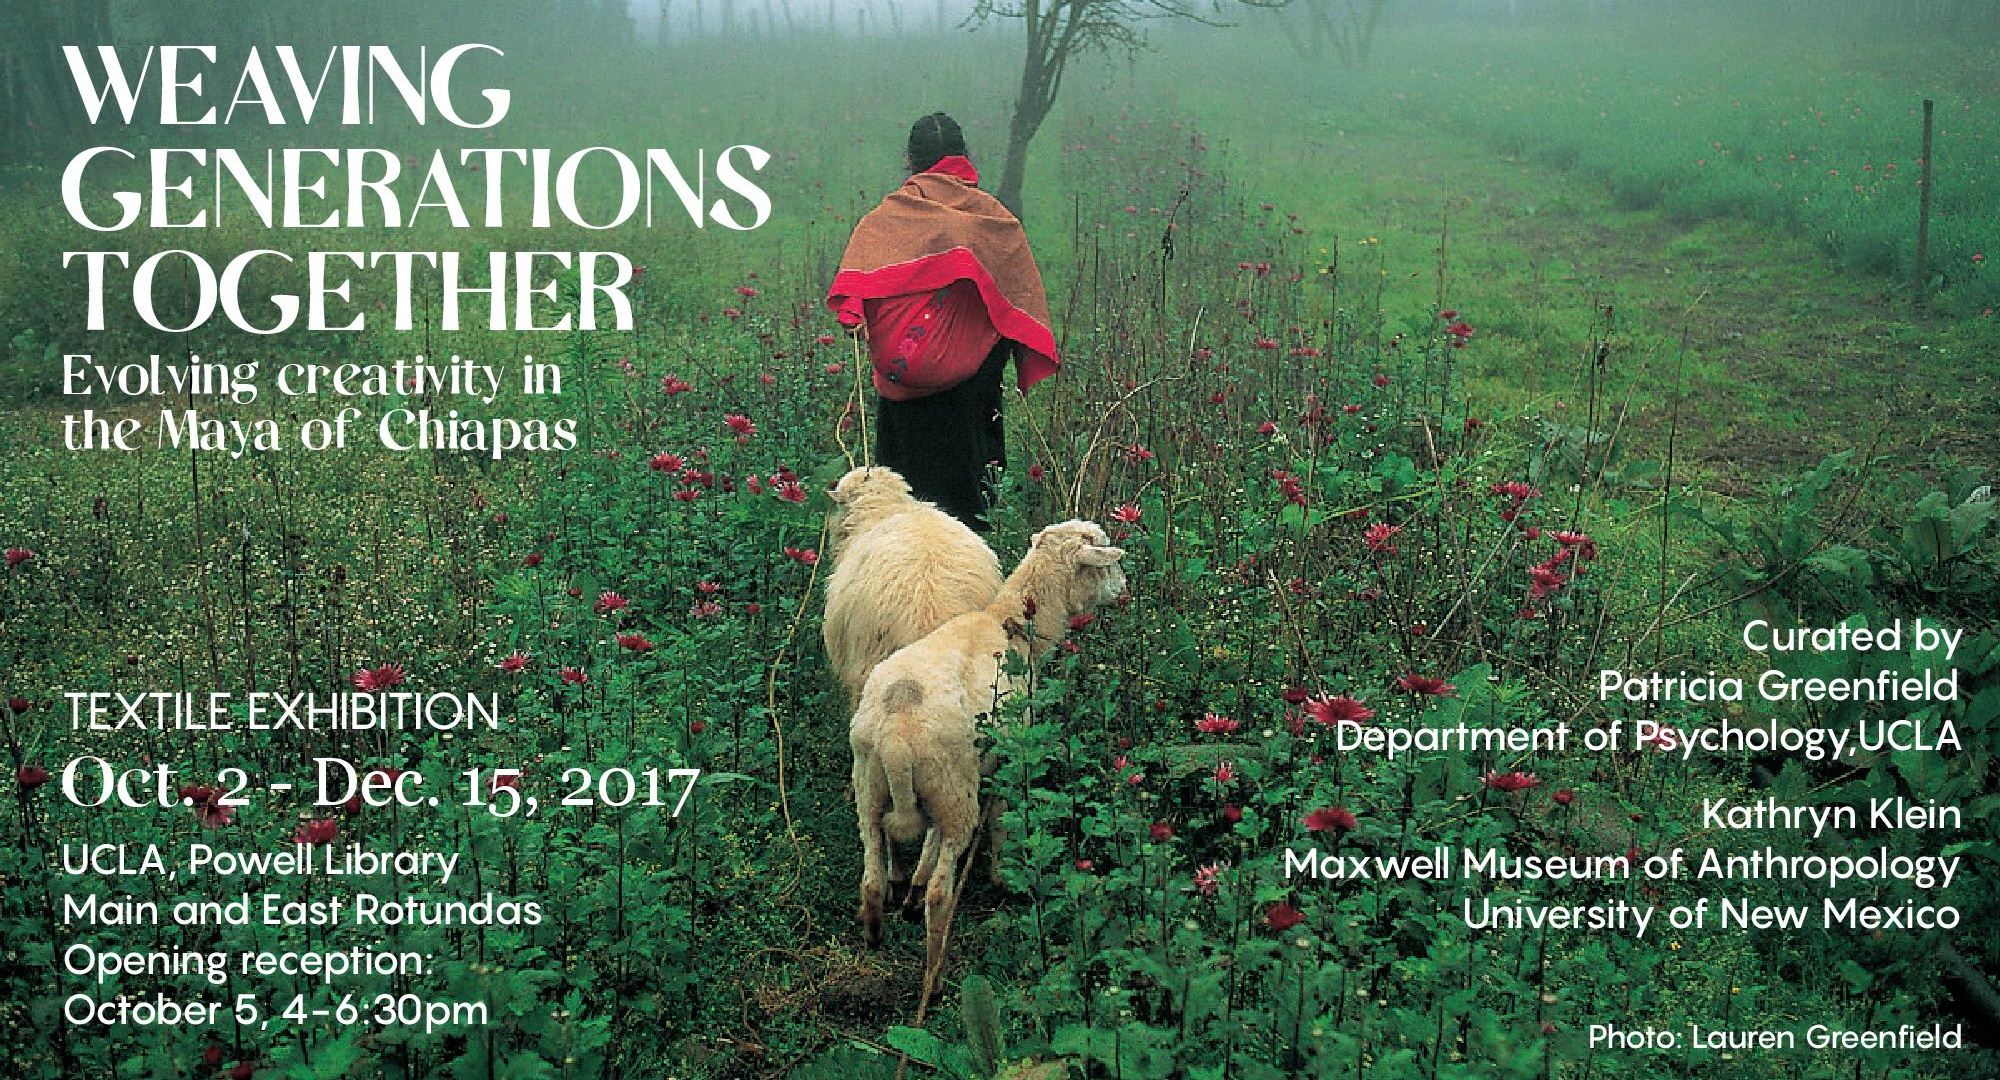 """Weaving Generations Together"" exhibit poster, featuring a background image of a woman leading her livestock through a field"